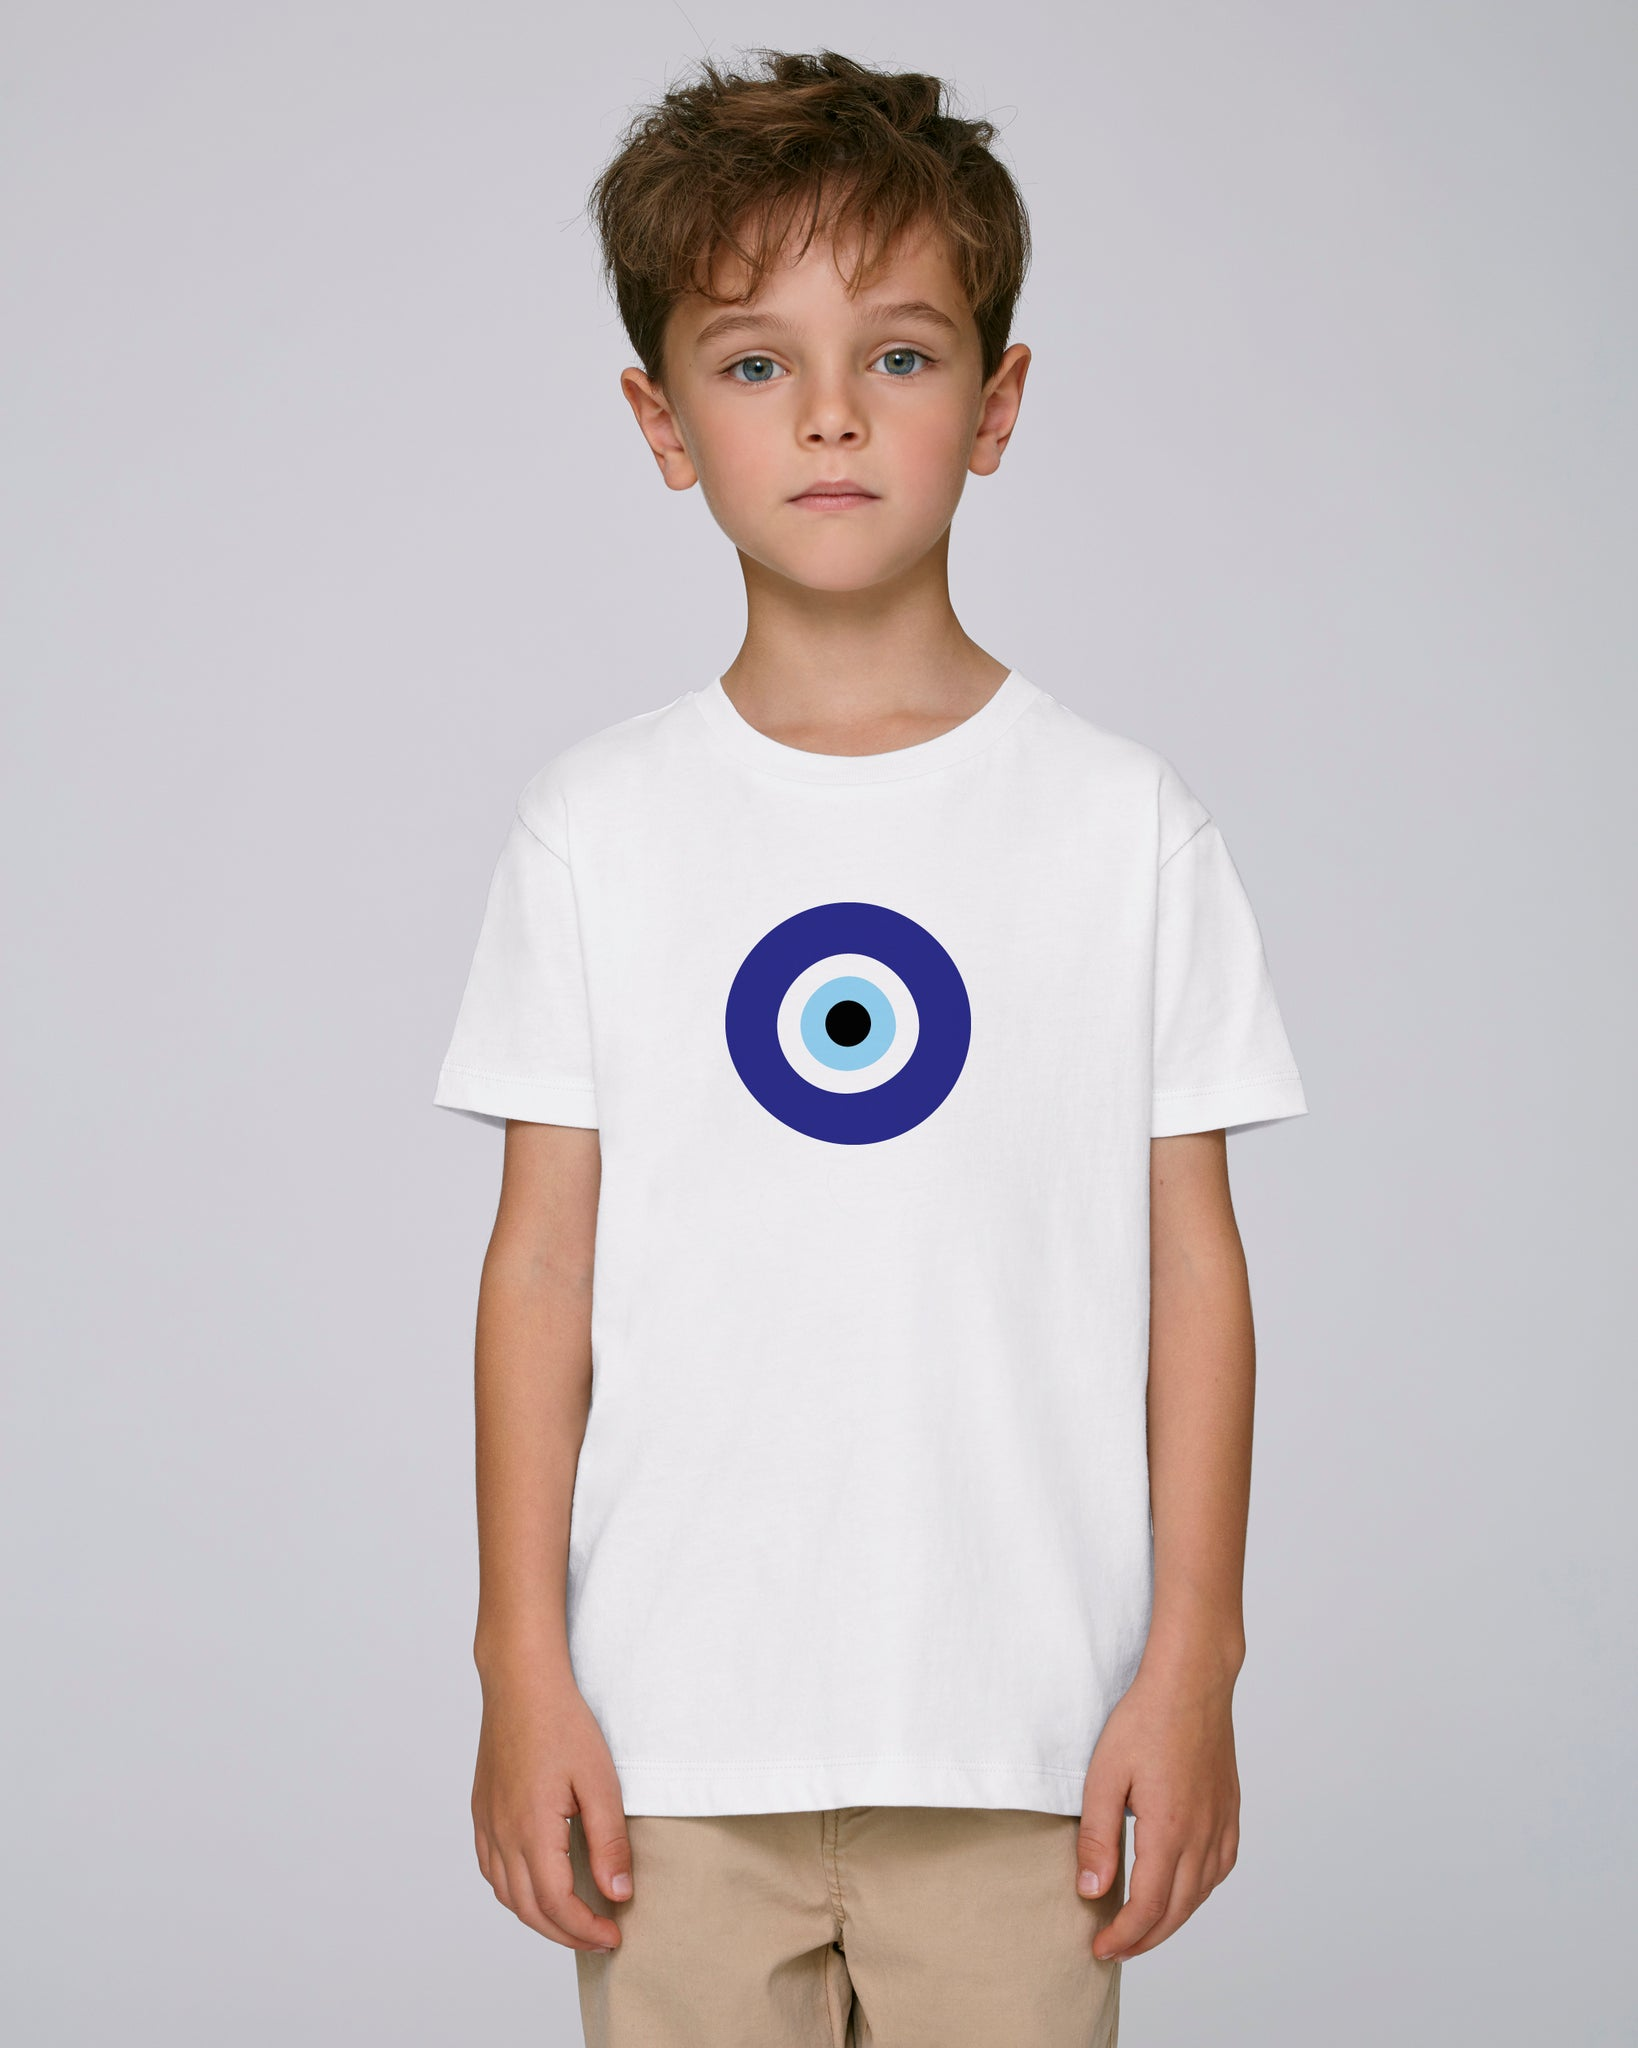 The Evil Eye kids tshirt